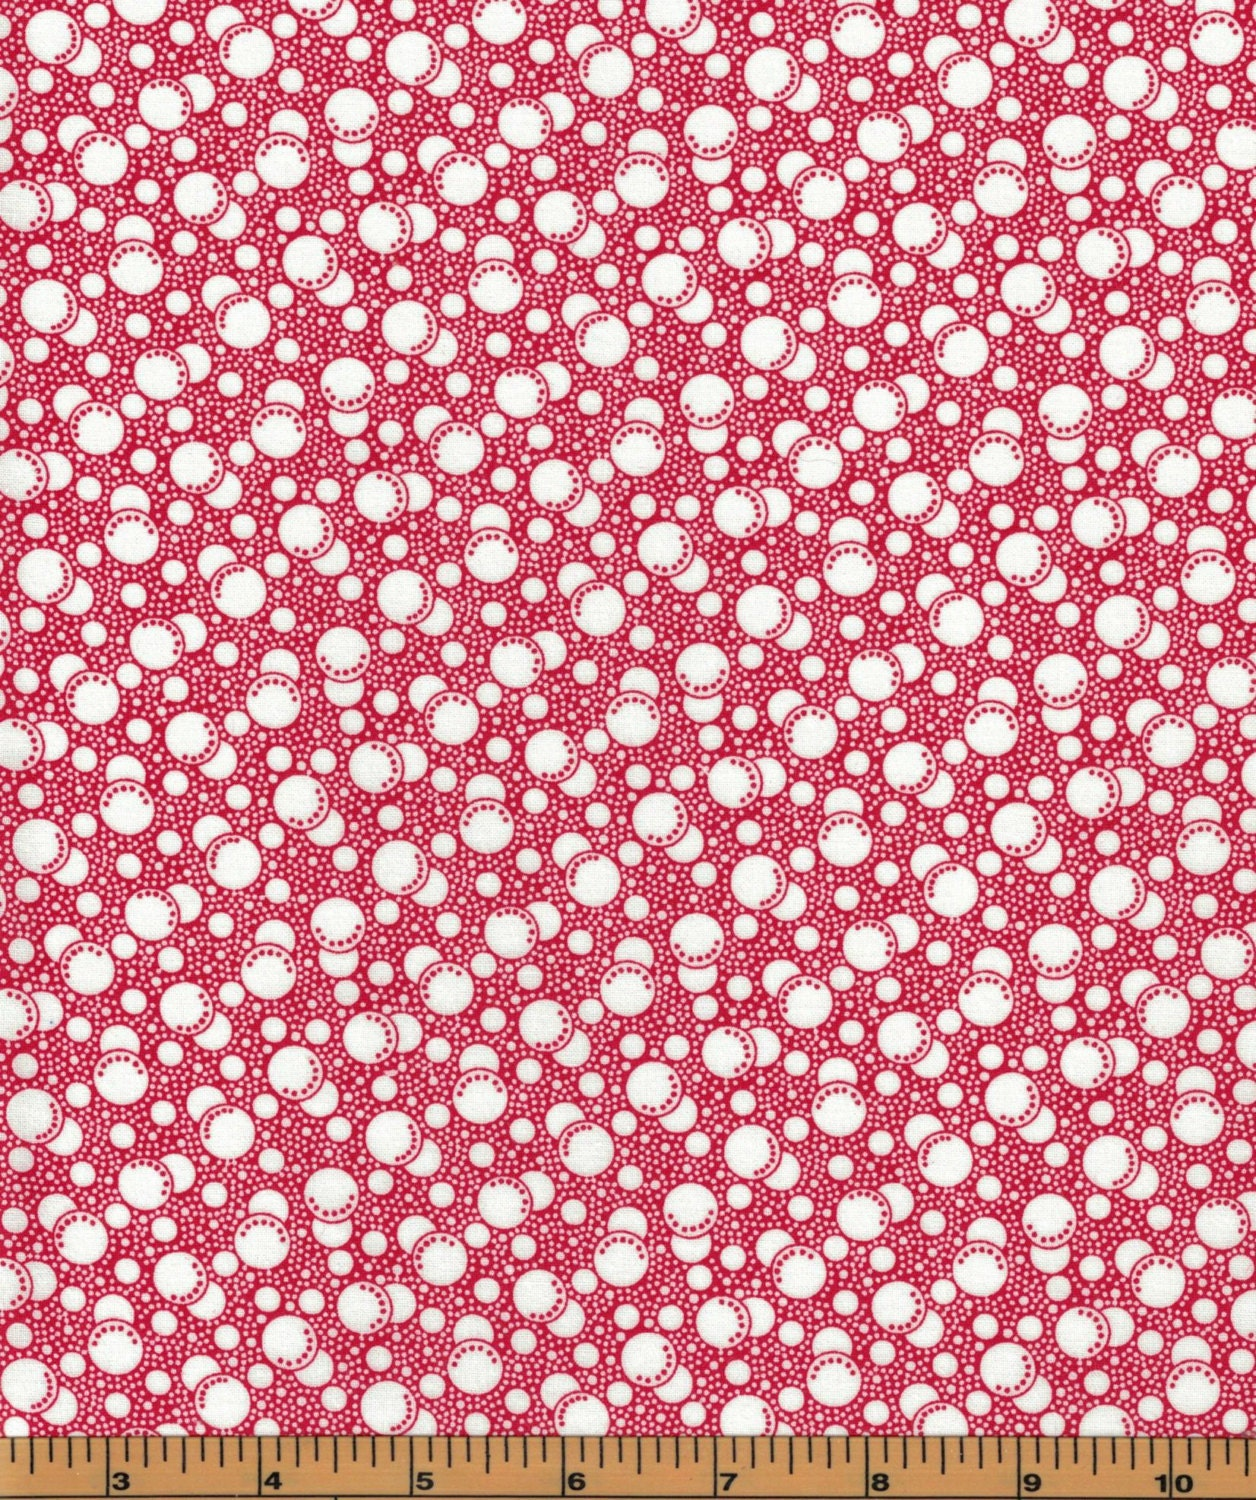 Galaxy fabrics licorice bits red 100 cotton quilting for Galaxy material fabric